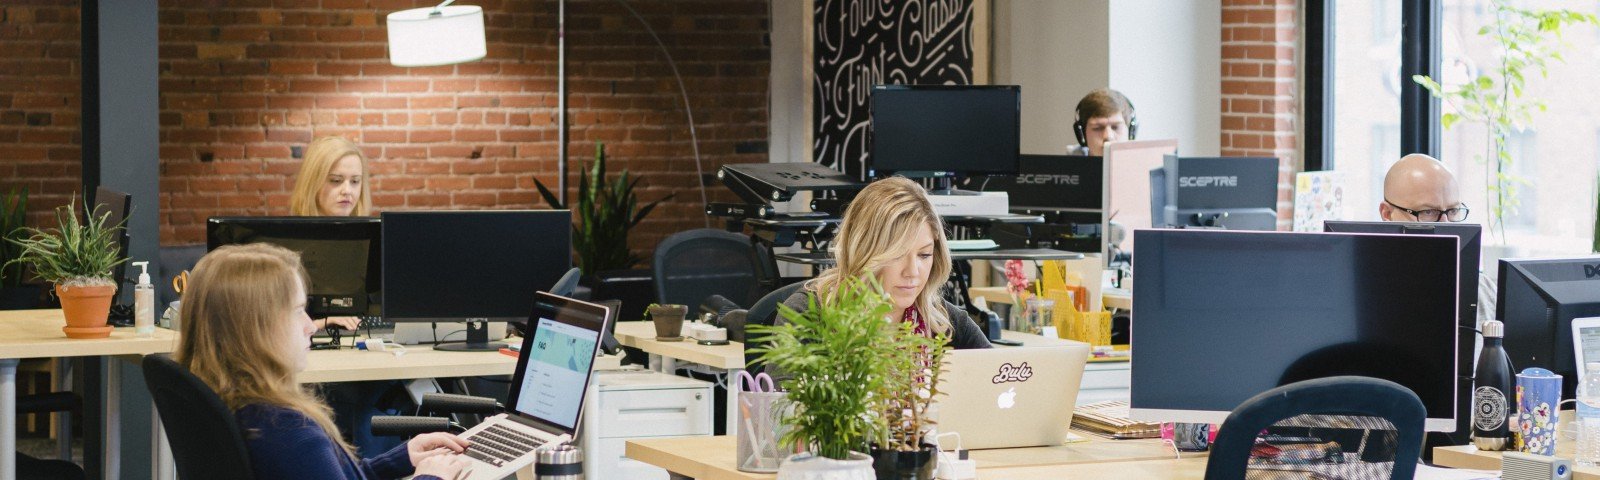 'Boutique' Coworking Spaces Find a Niche Nurturing Small Businesses